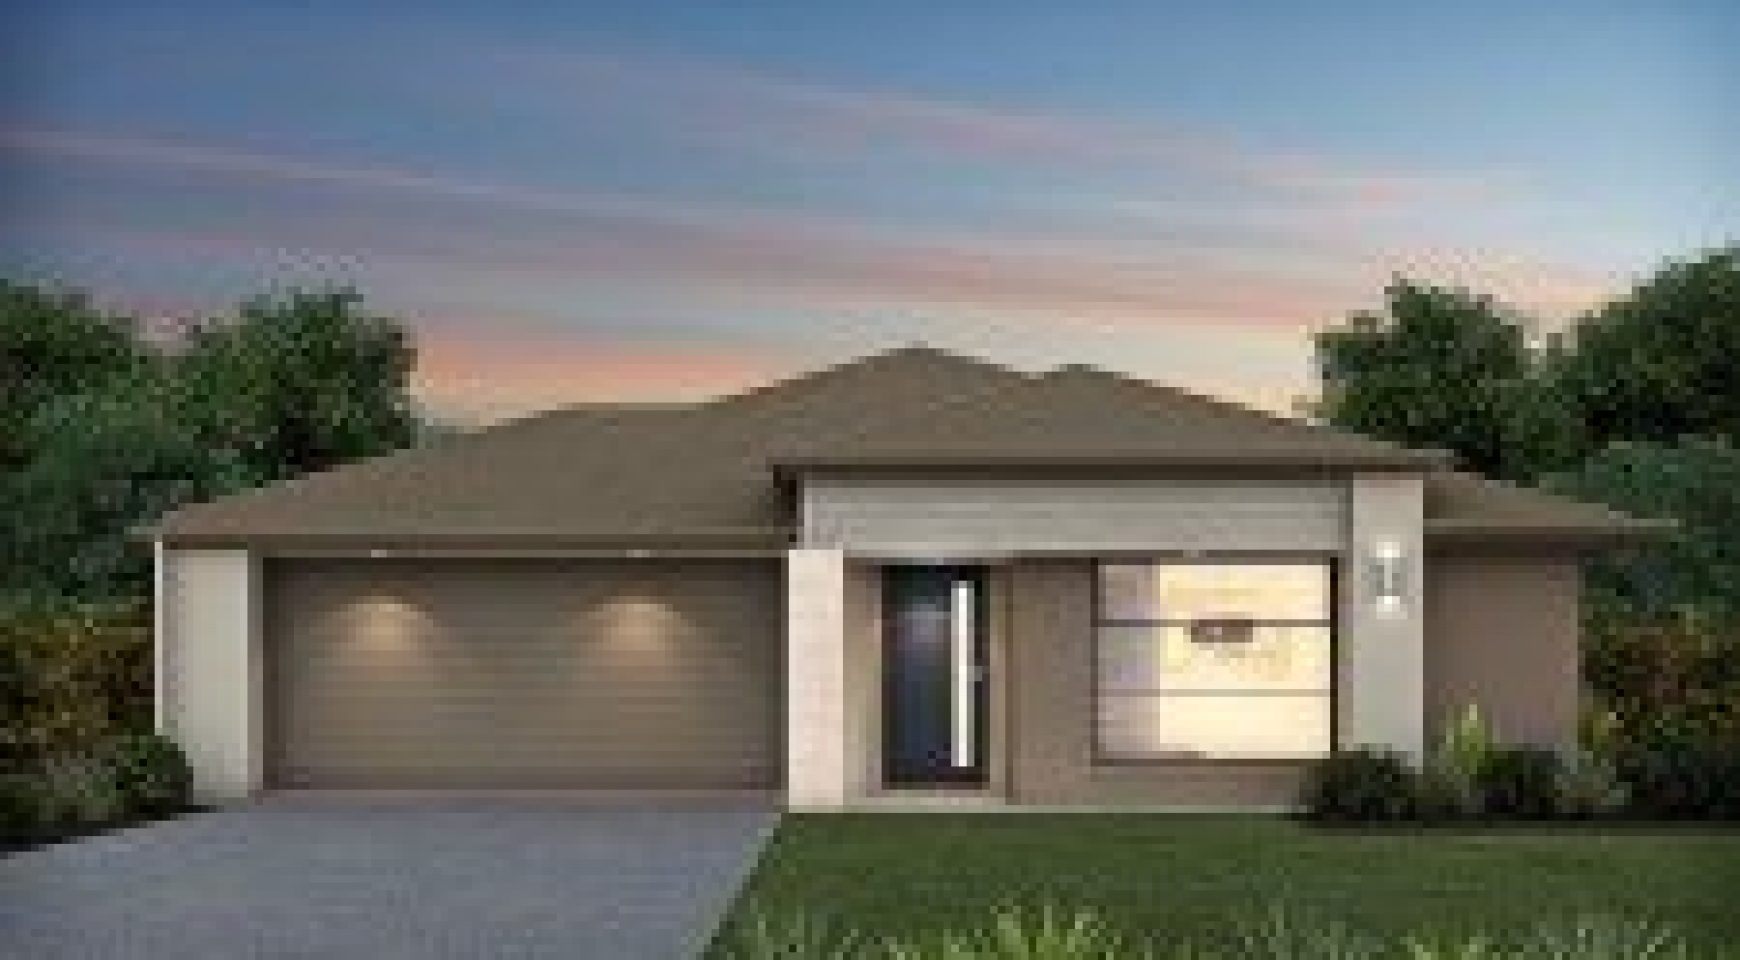 4 Bedrooms House And Lot Package In Werribee Vic Victoria